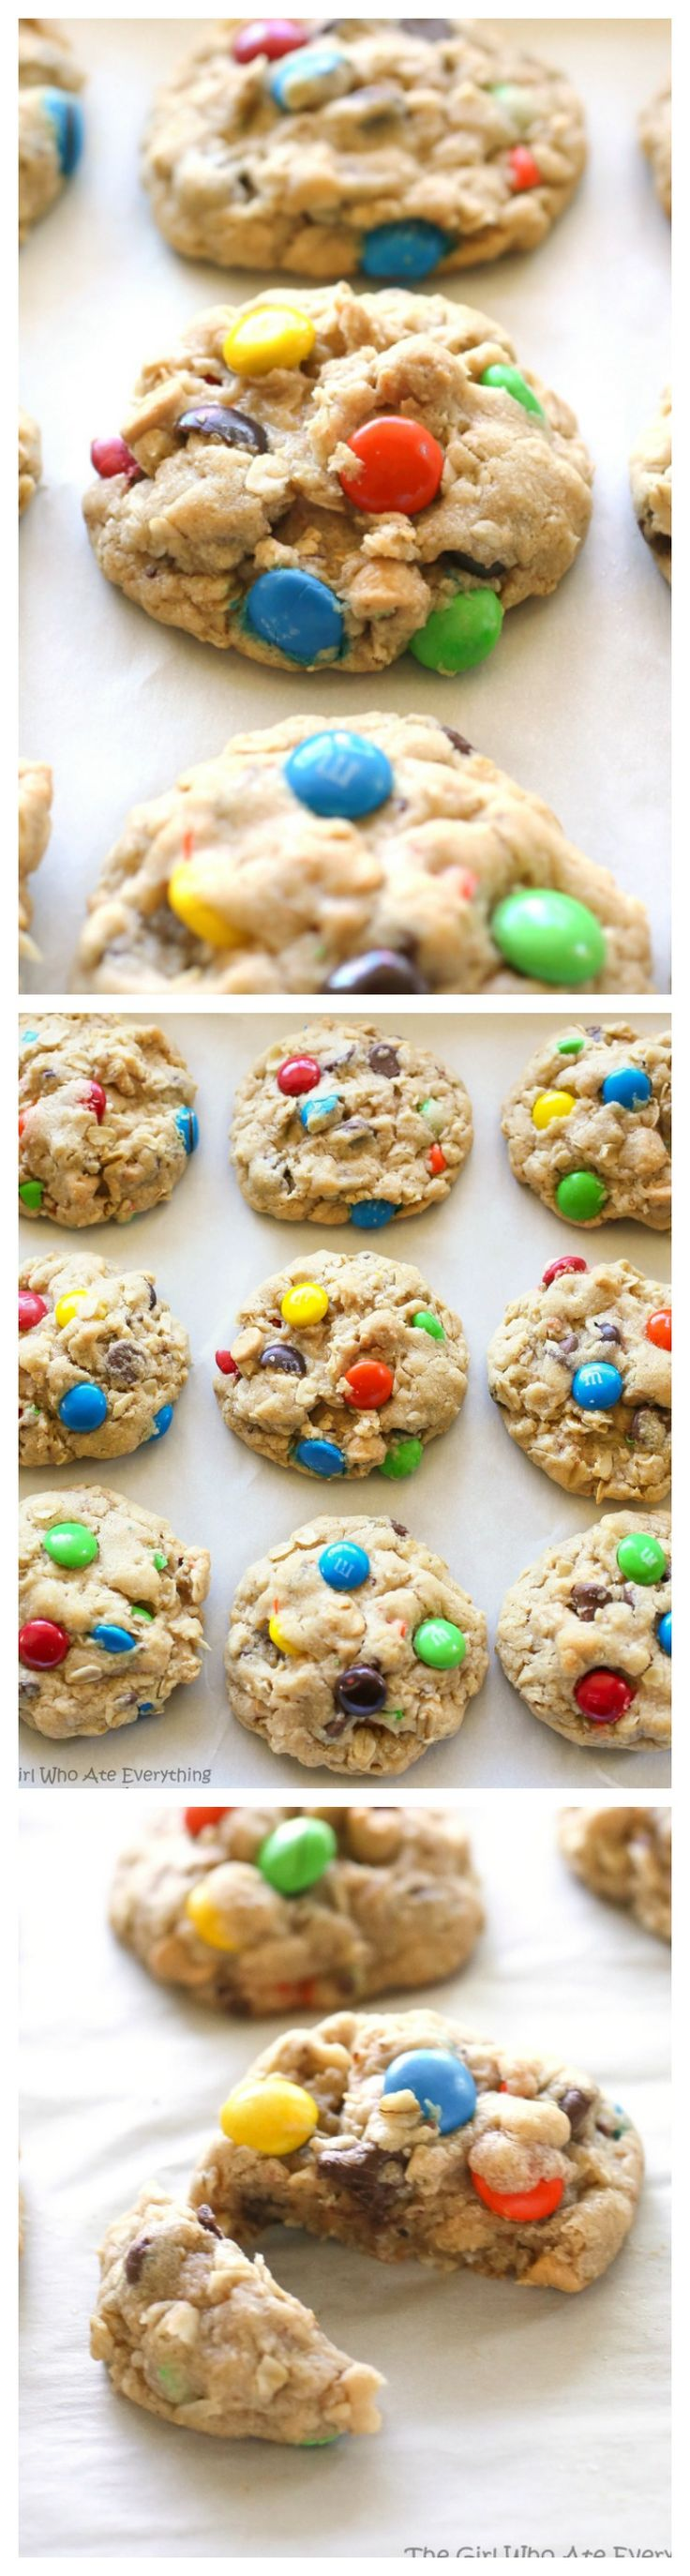 Monster Cookies - these soft cookies are filled with peanut butter, oats, chocolate chips, and M&Ms.